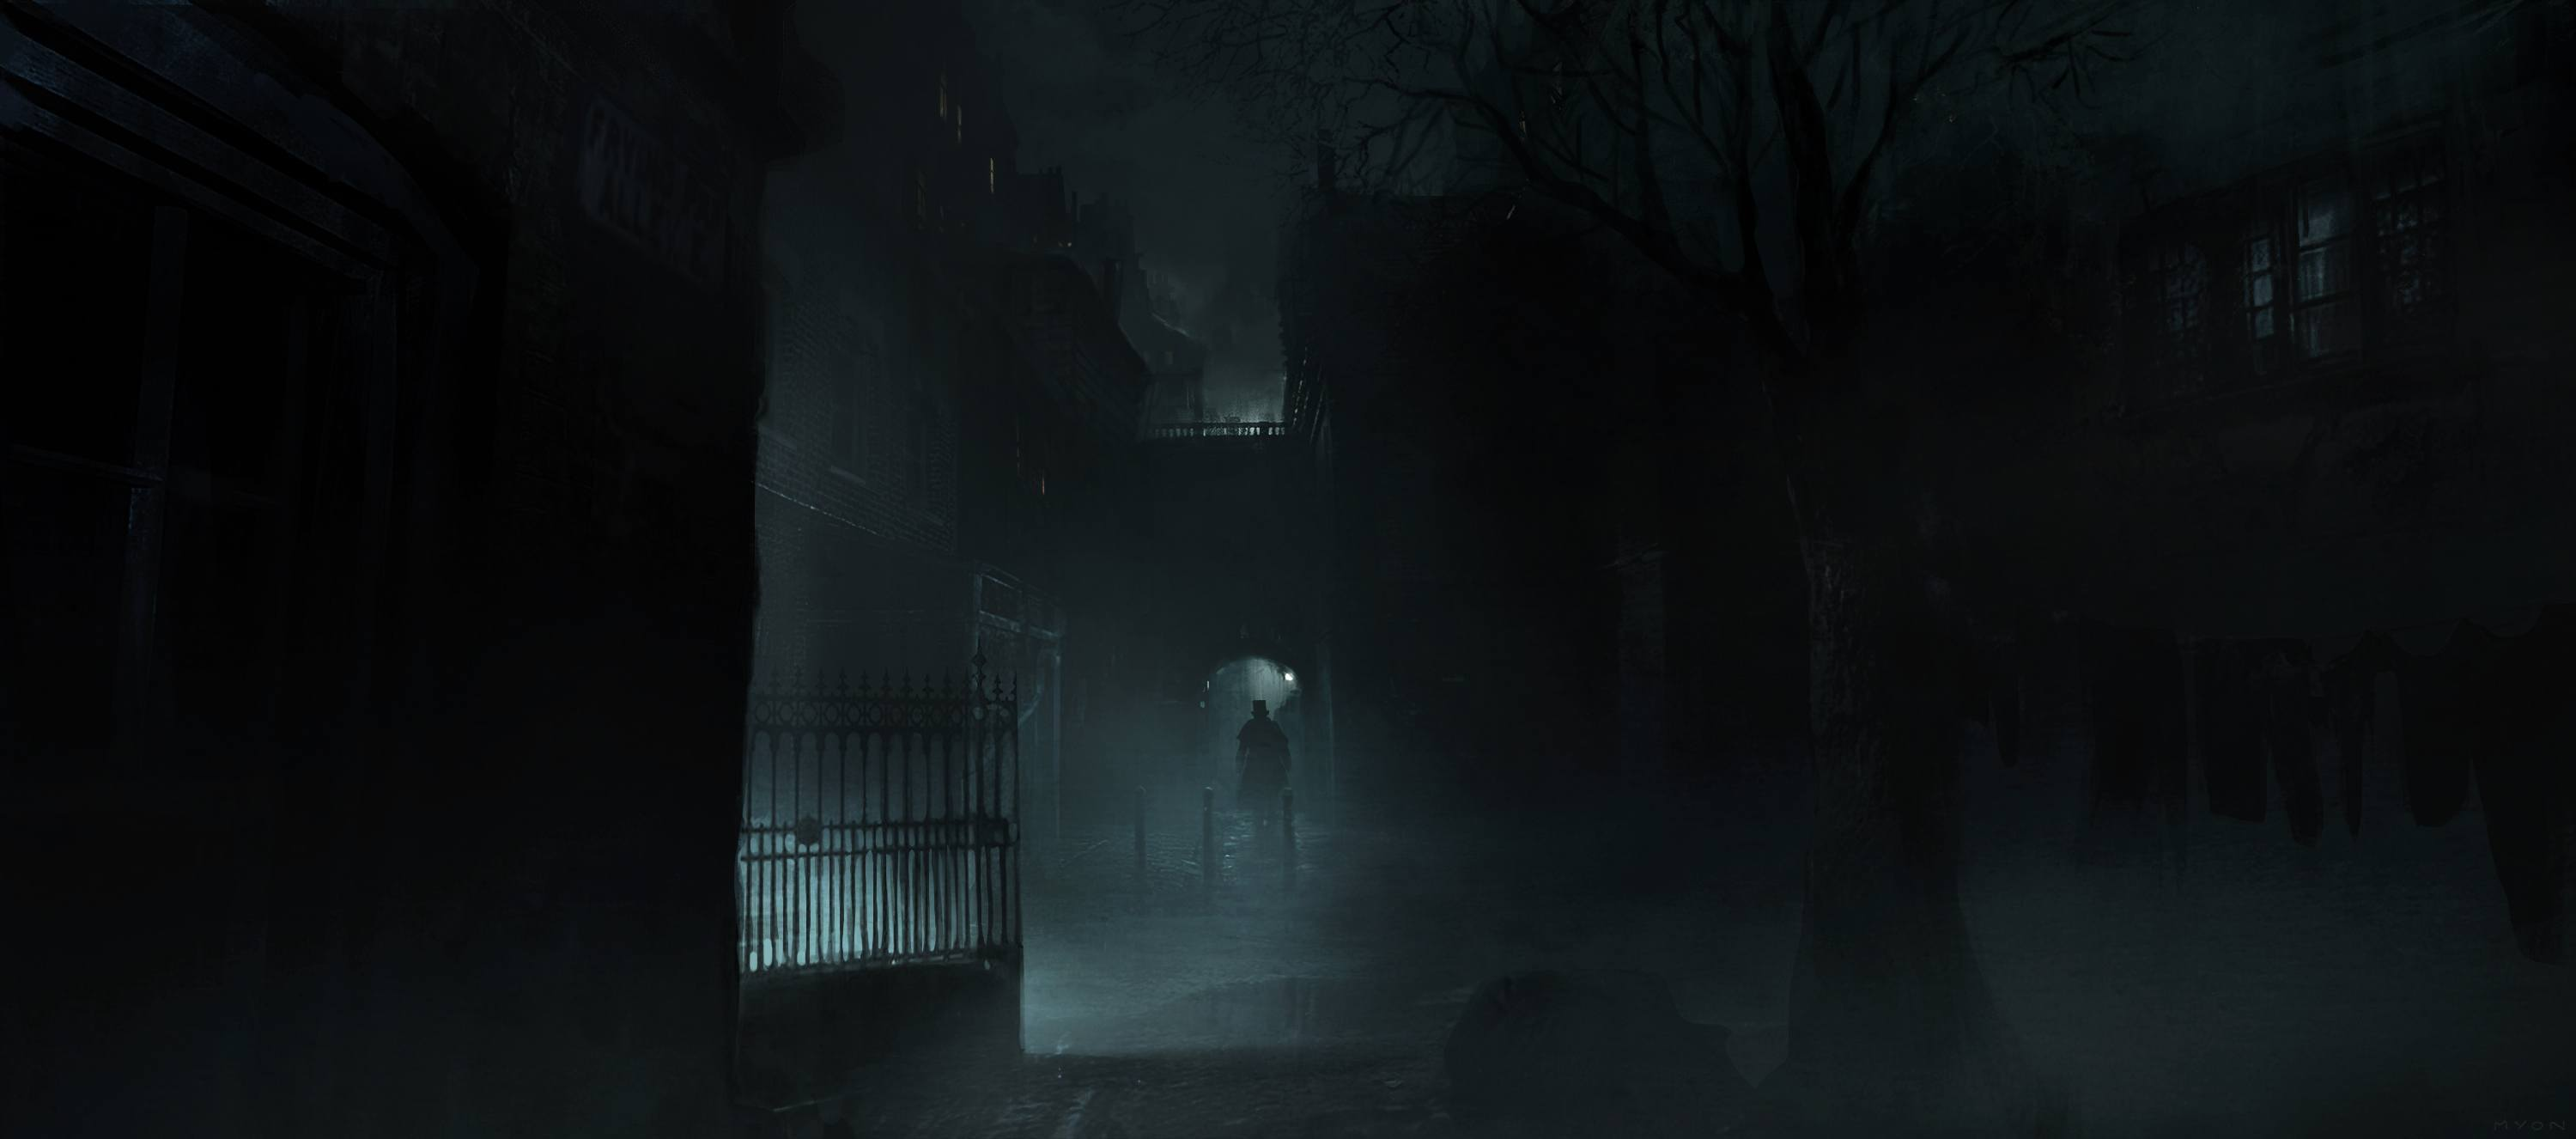 Ubisoft Reveal Jack The Ripper DLC Is Coming To Assassins Creed Syndicate UNILAD ACS JTR WHITECHAPEL JACK SHADOW 14422760433